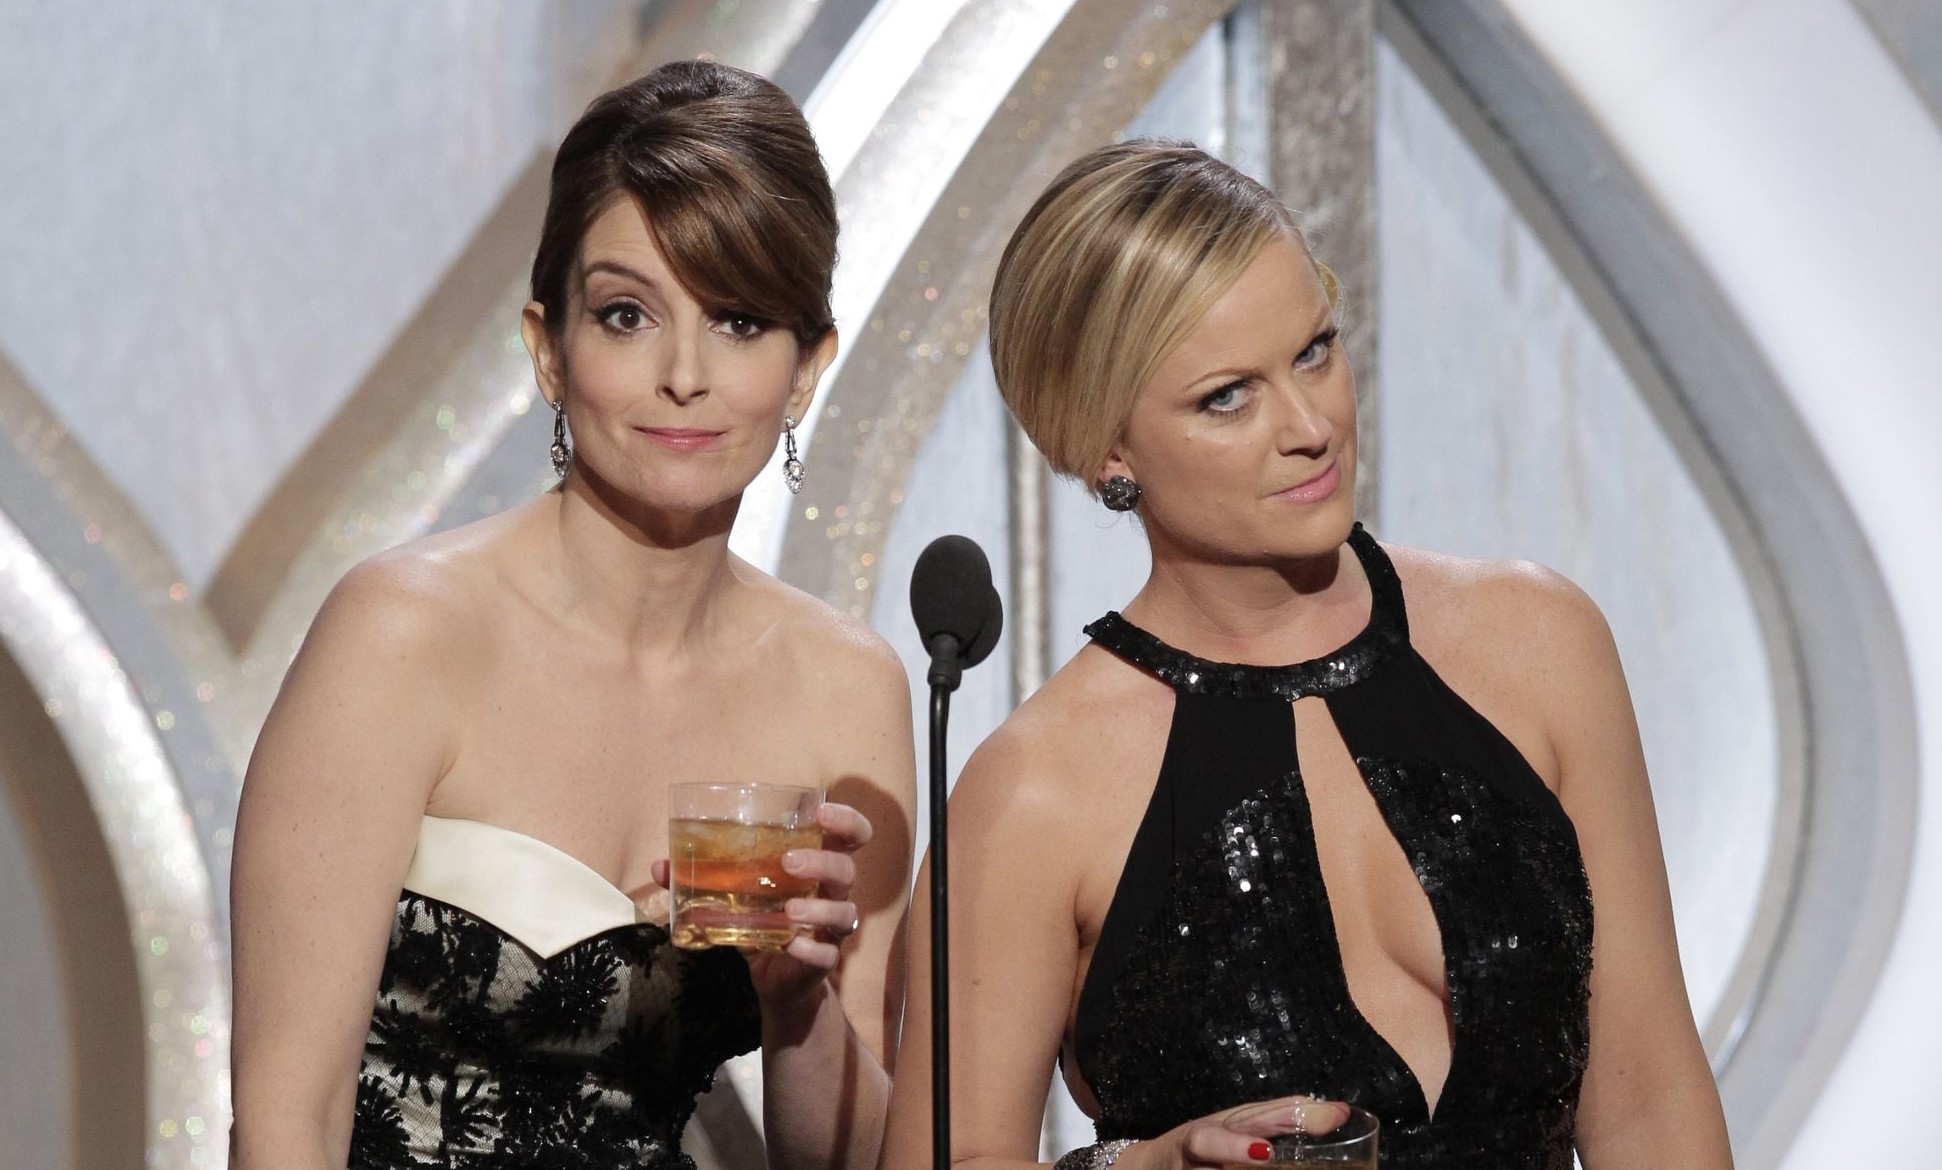 Tina Fey and Amy Poehler confirmed to host the Golden Globes in 2014 and 2015